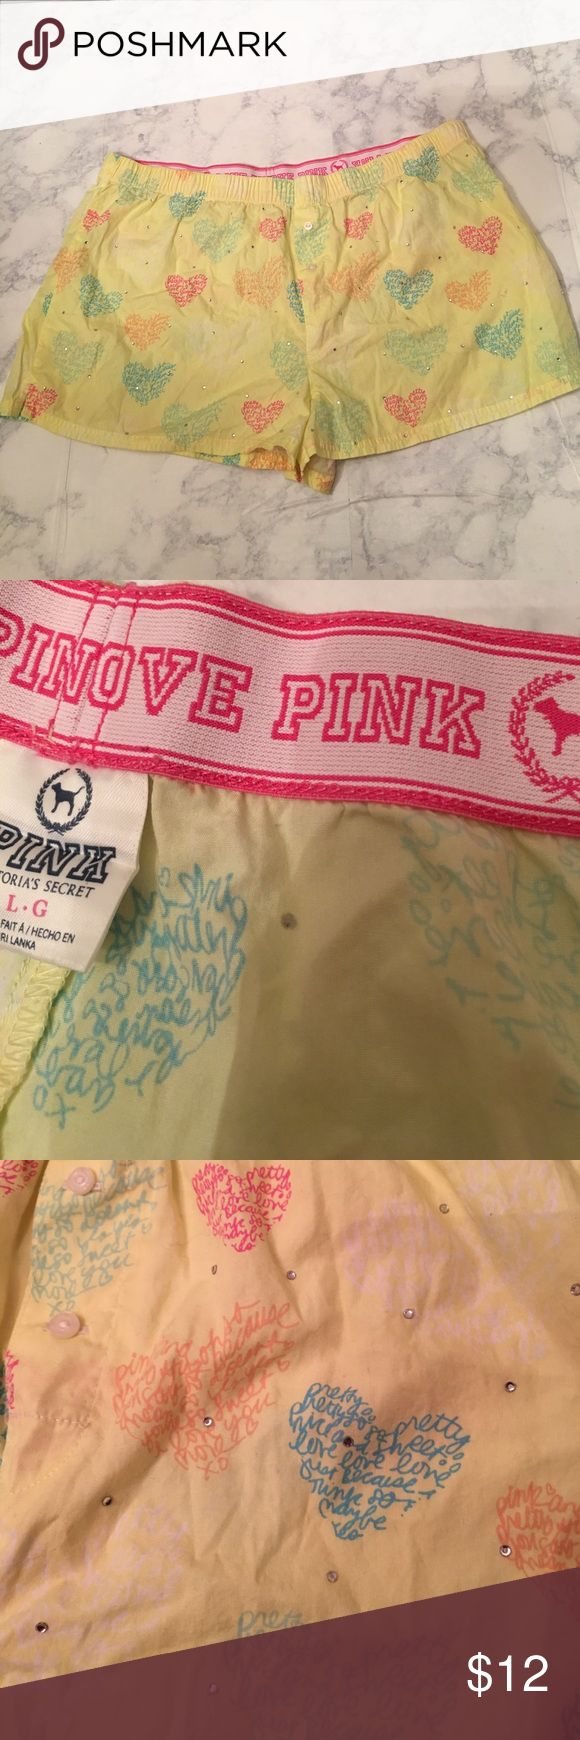 PINK Victoria Secret women's boxer shorts size L These are super cute women's Pink Victoria Secret Boxers, with rhinestones. No wear, excellent condition(no holes, stains, rips, holes, or odor).                                                    Waist:34inches, length: 12 inches PINK Victoria's Secret Intimates & Sleepwear Pajamas